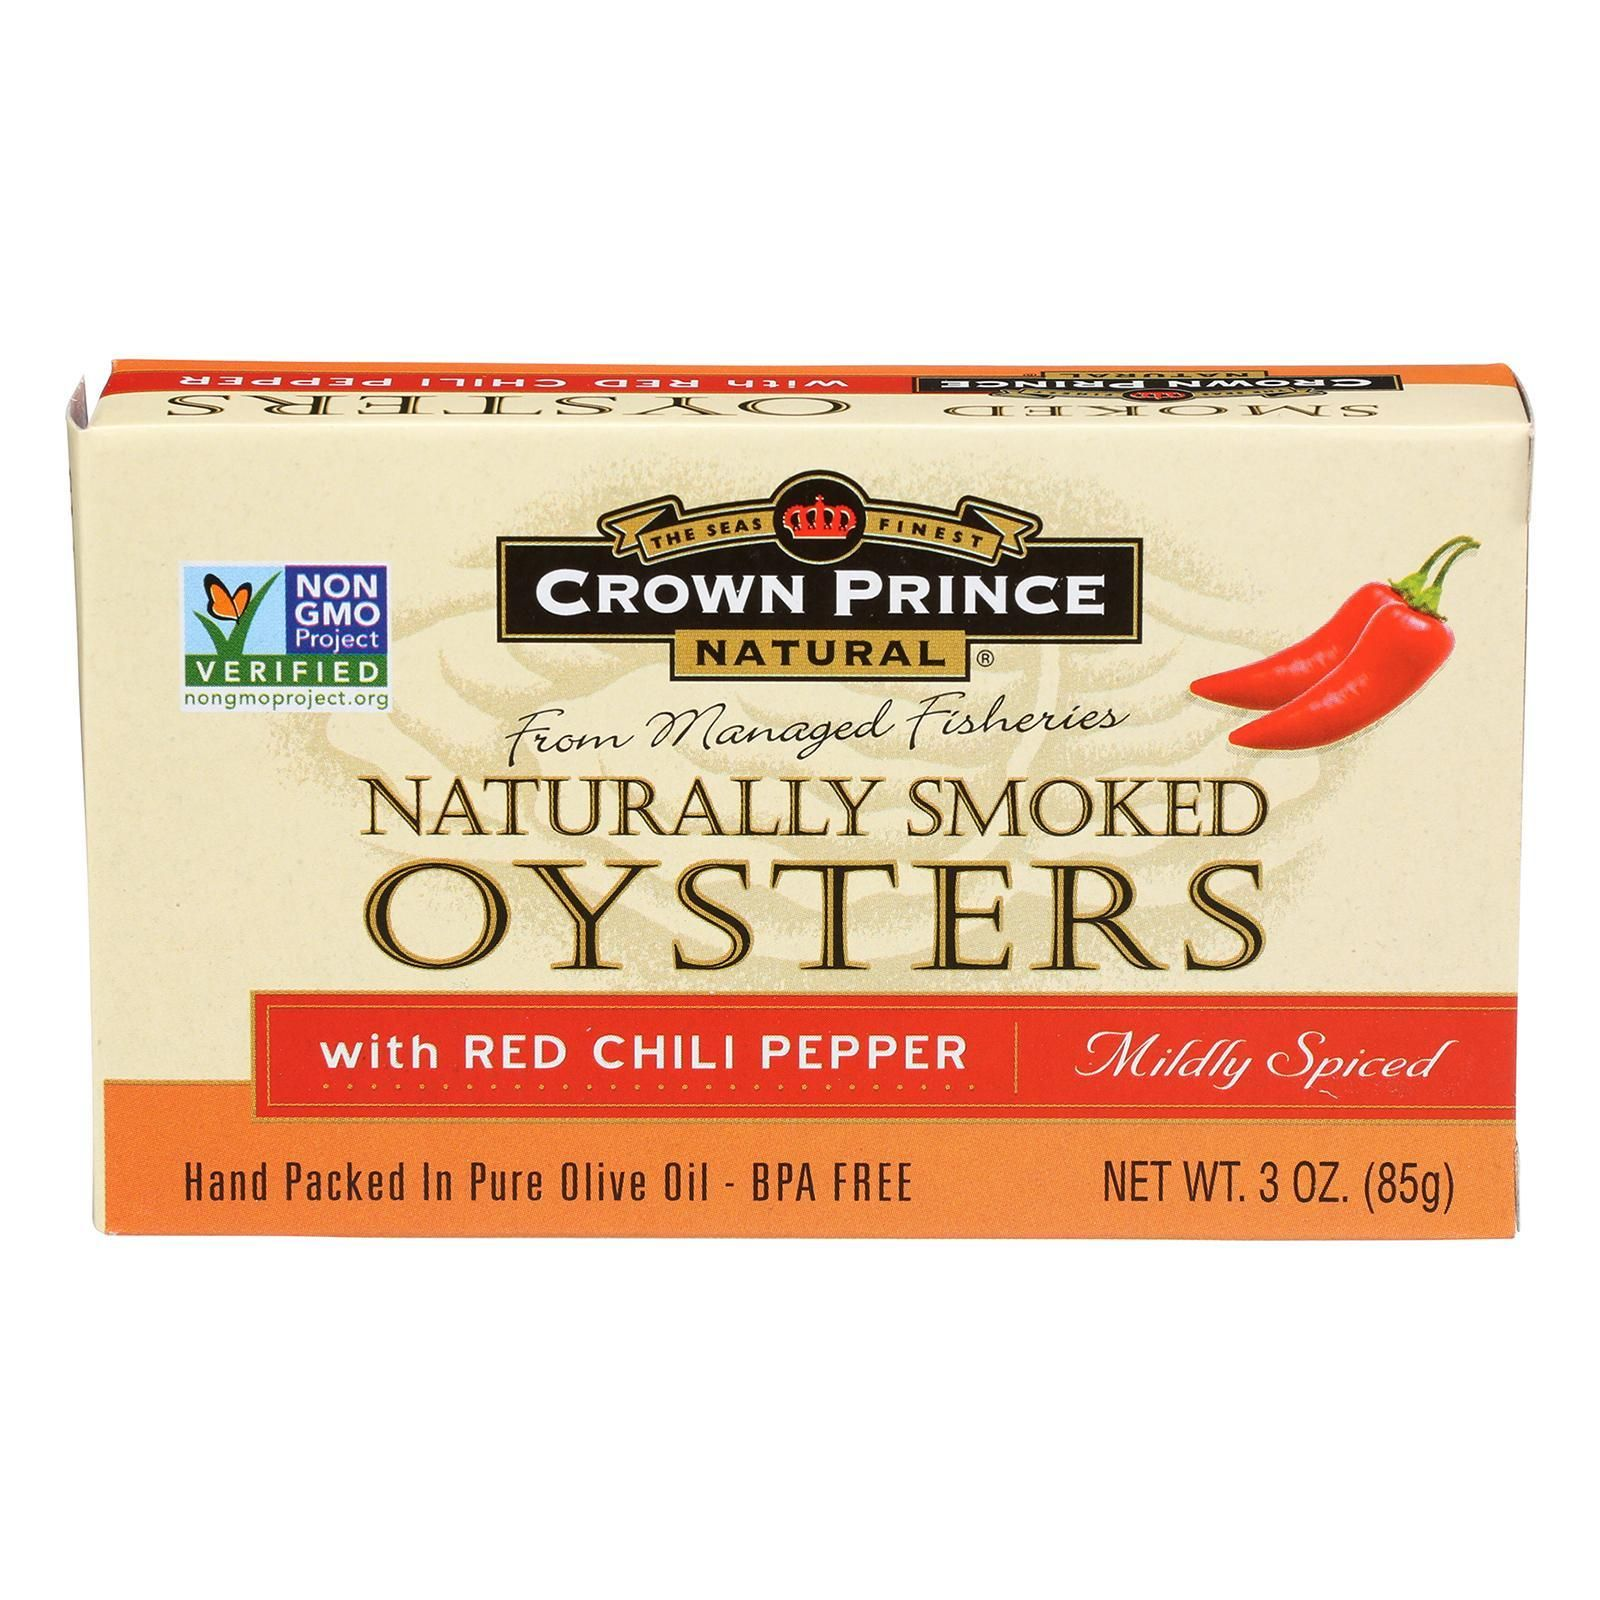 Naturally Wood Smoked Hand Packed In Pure Cold Pressed Olive Oil With Red Chili Pepper Non Gmo Project With Images Red Chili Peppers Stuffed Peppers Red Chili